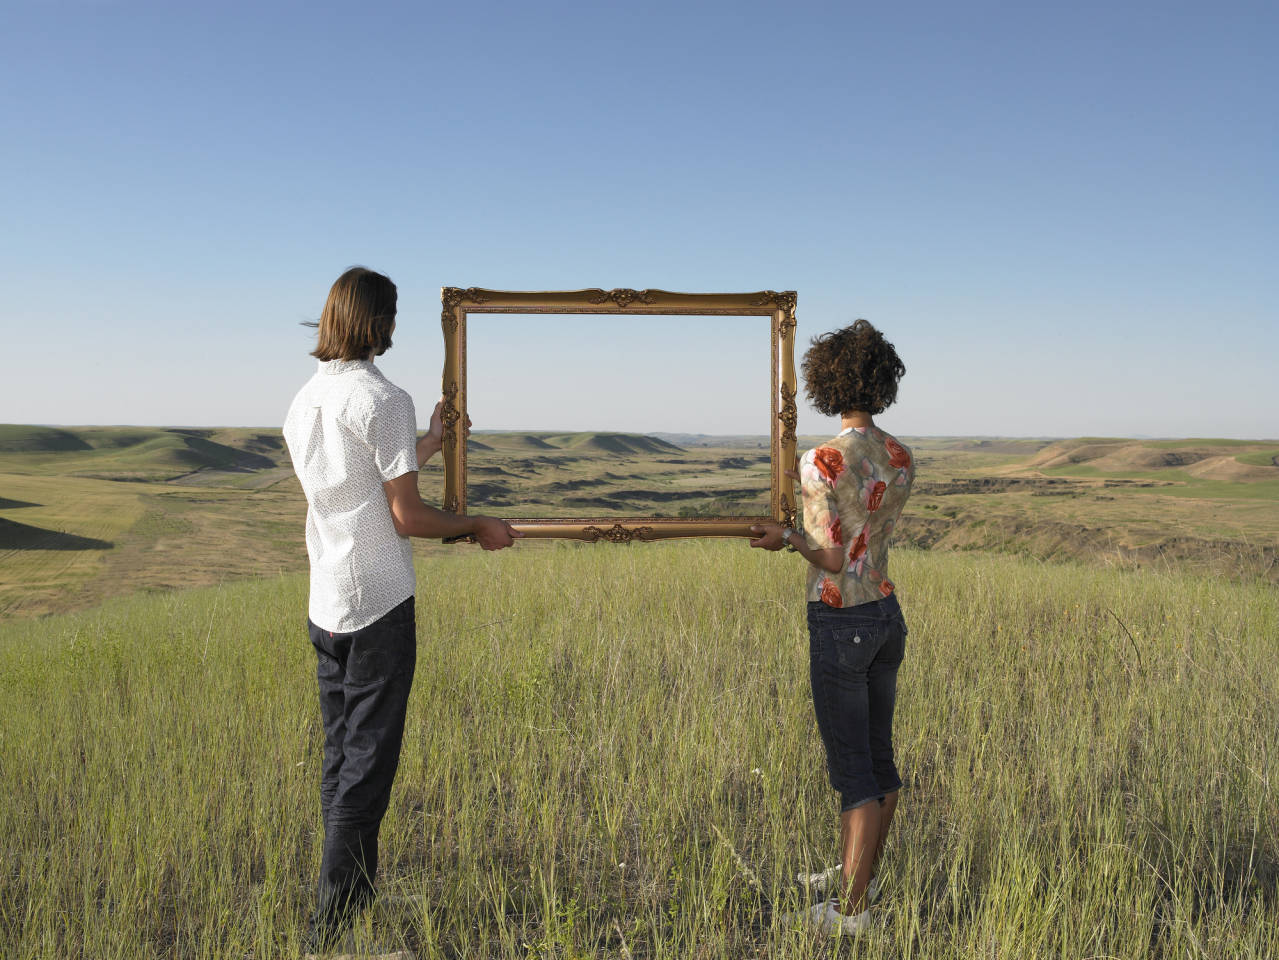 couple standing in an open field holding an empty picture frame